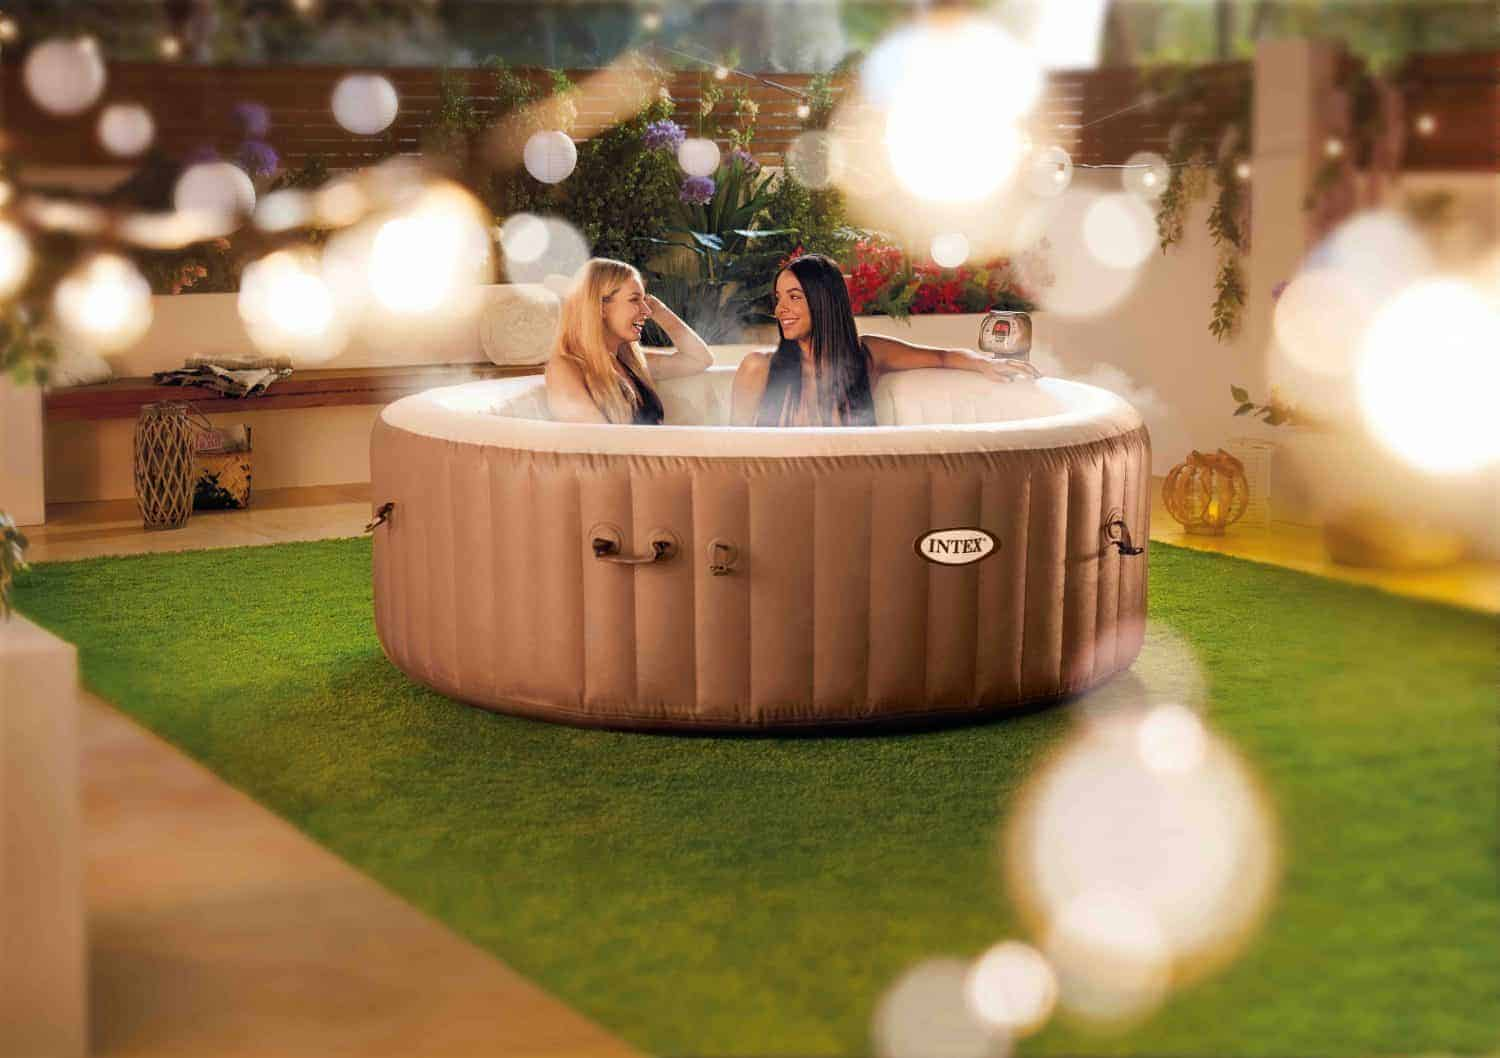 lidl 39 s bargain hot tub is 50 cheaper than aldi 39 s yay cork. Black Bedroom Furniture Sets. Home Design Ideas